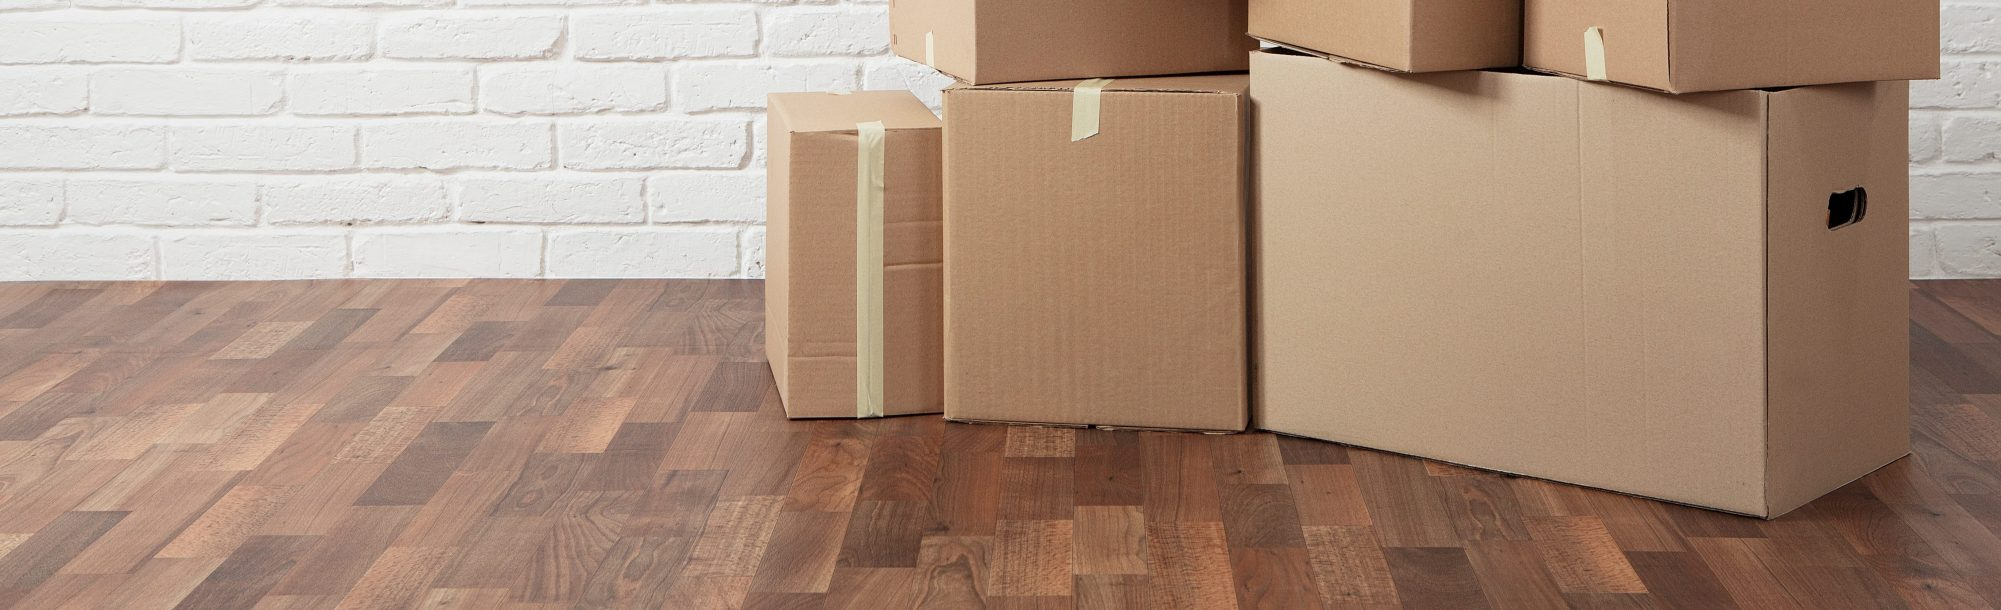 Canberra Removalists Budget Self Pack Containers Australia